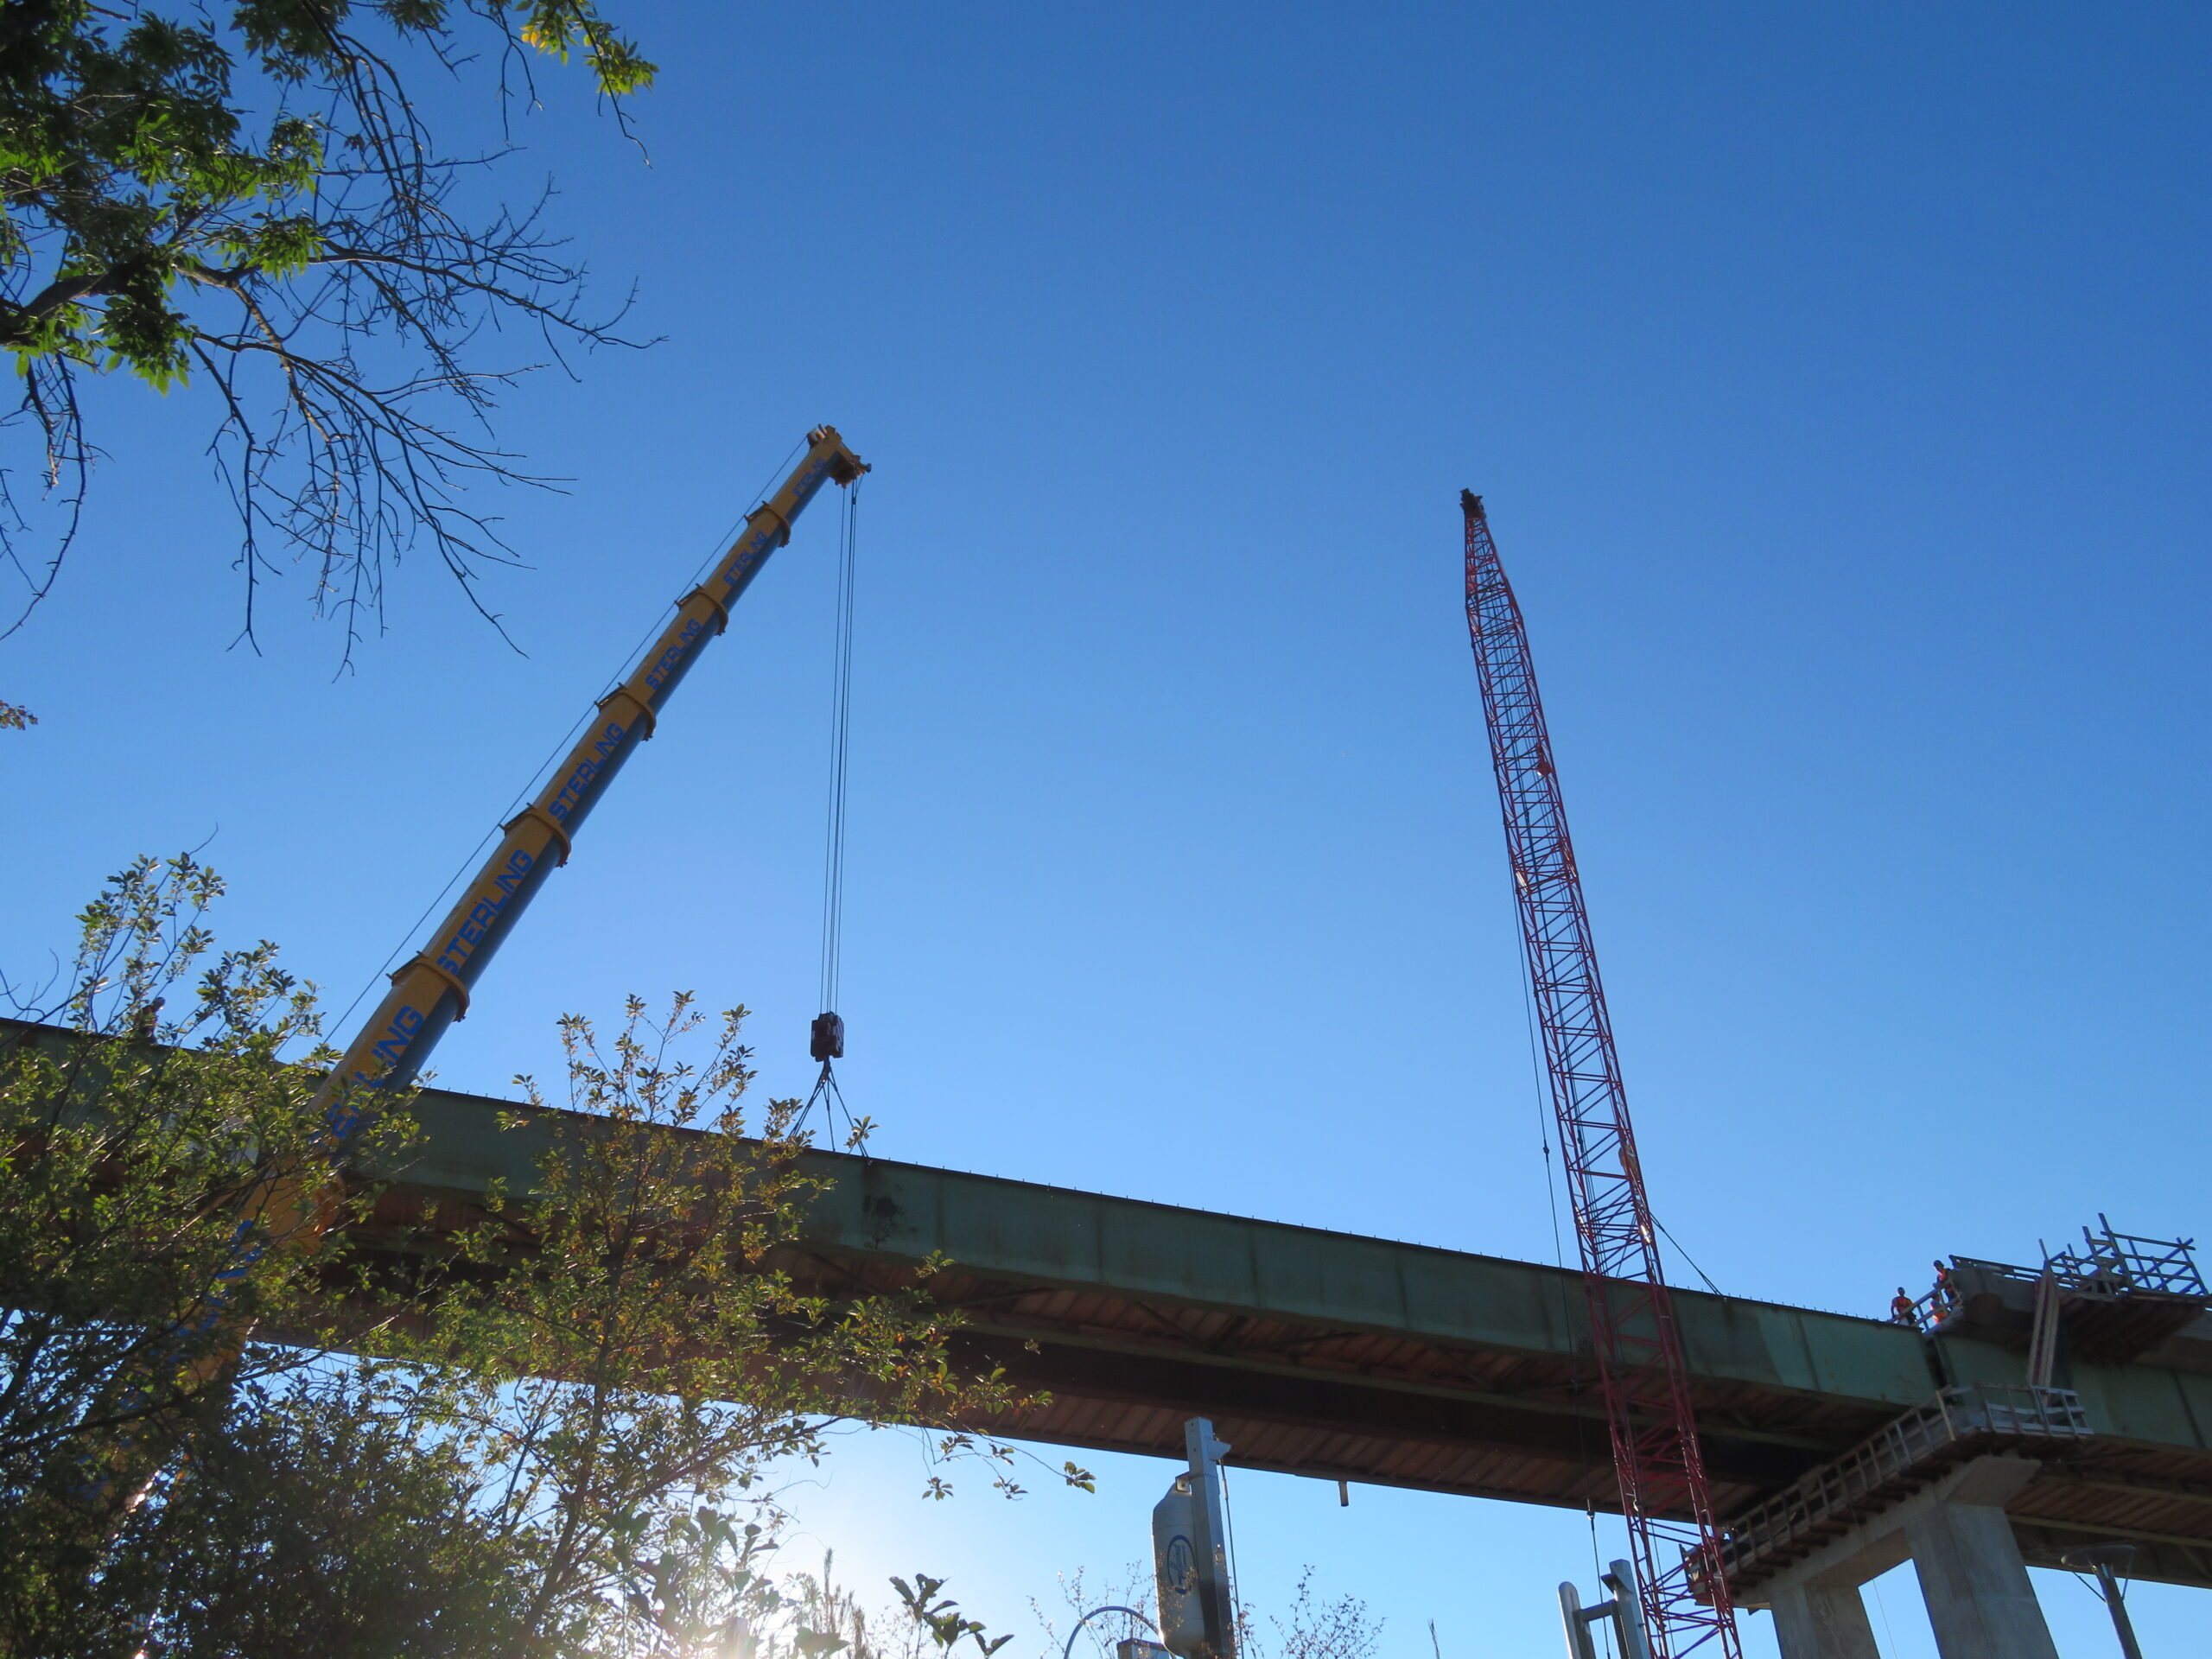 110 and 300-ton cranes preparing to remove the second approach girder